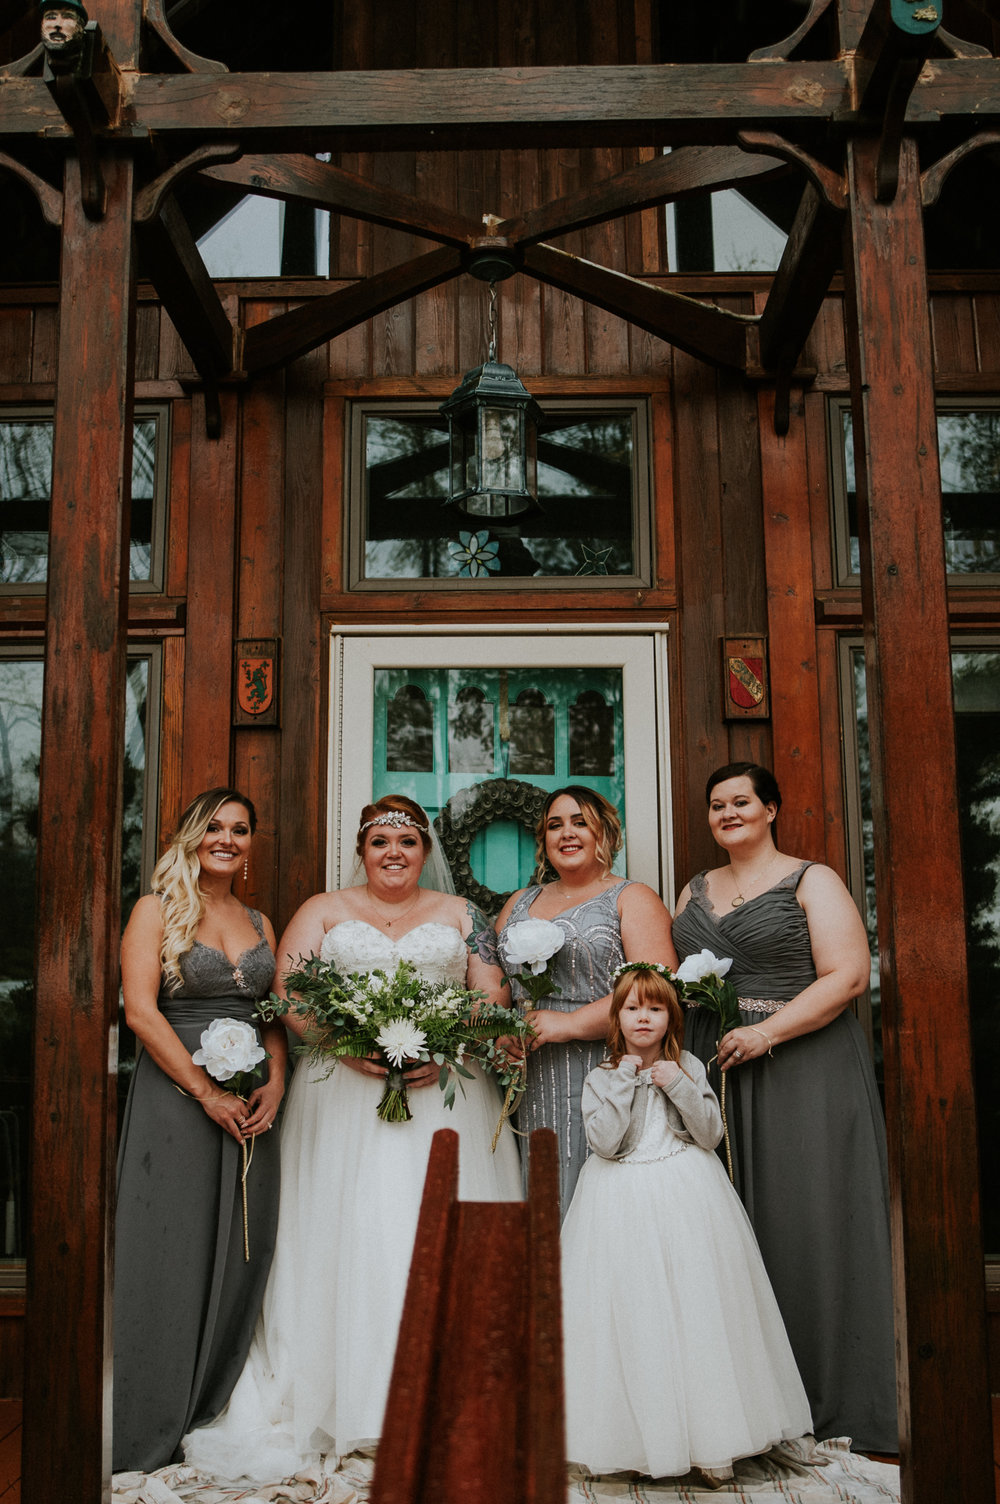 Byron Michigan Wedding | Miss Lyss Photography | www.misslyssphotography.com